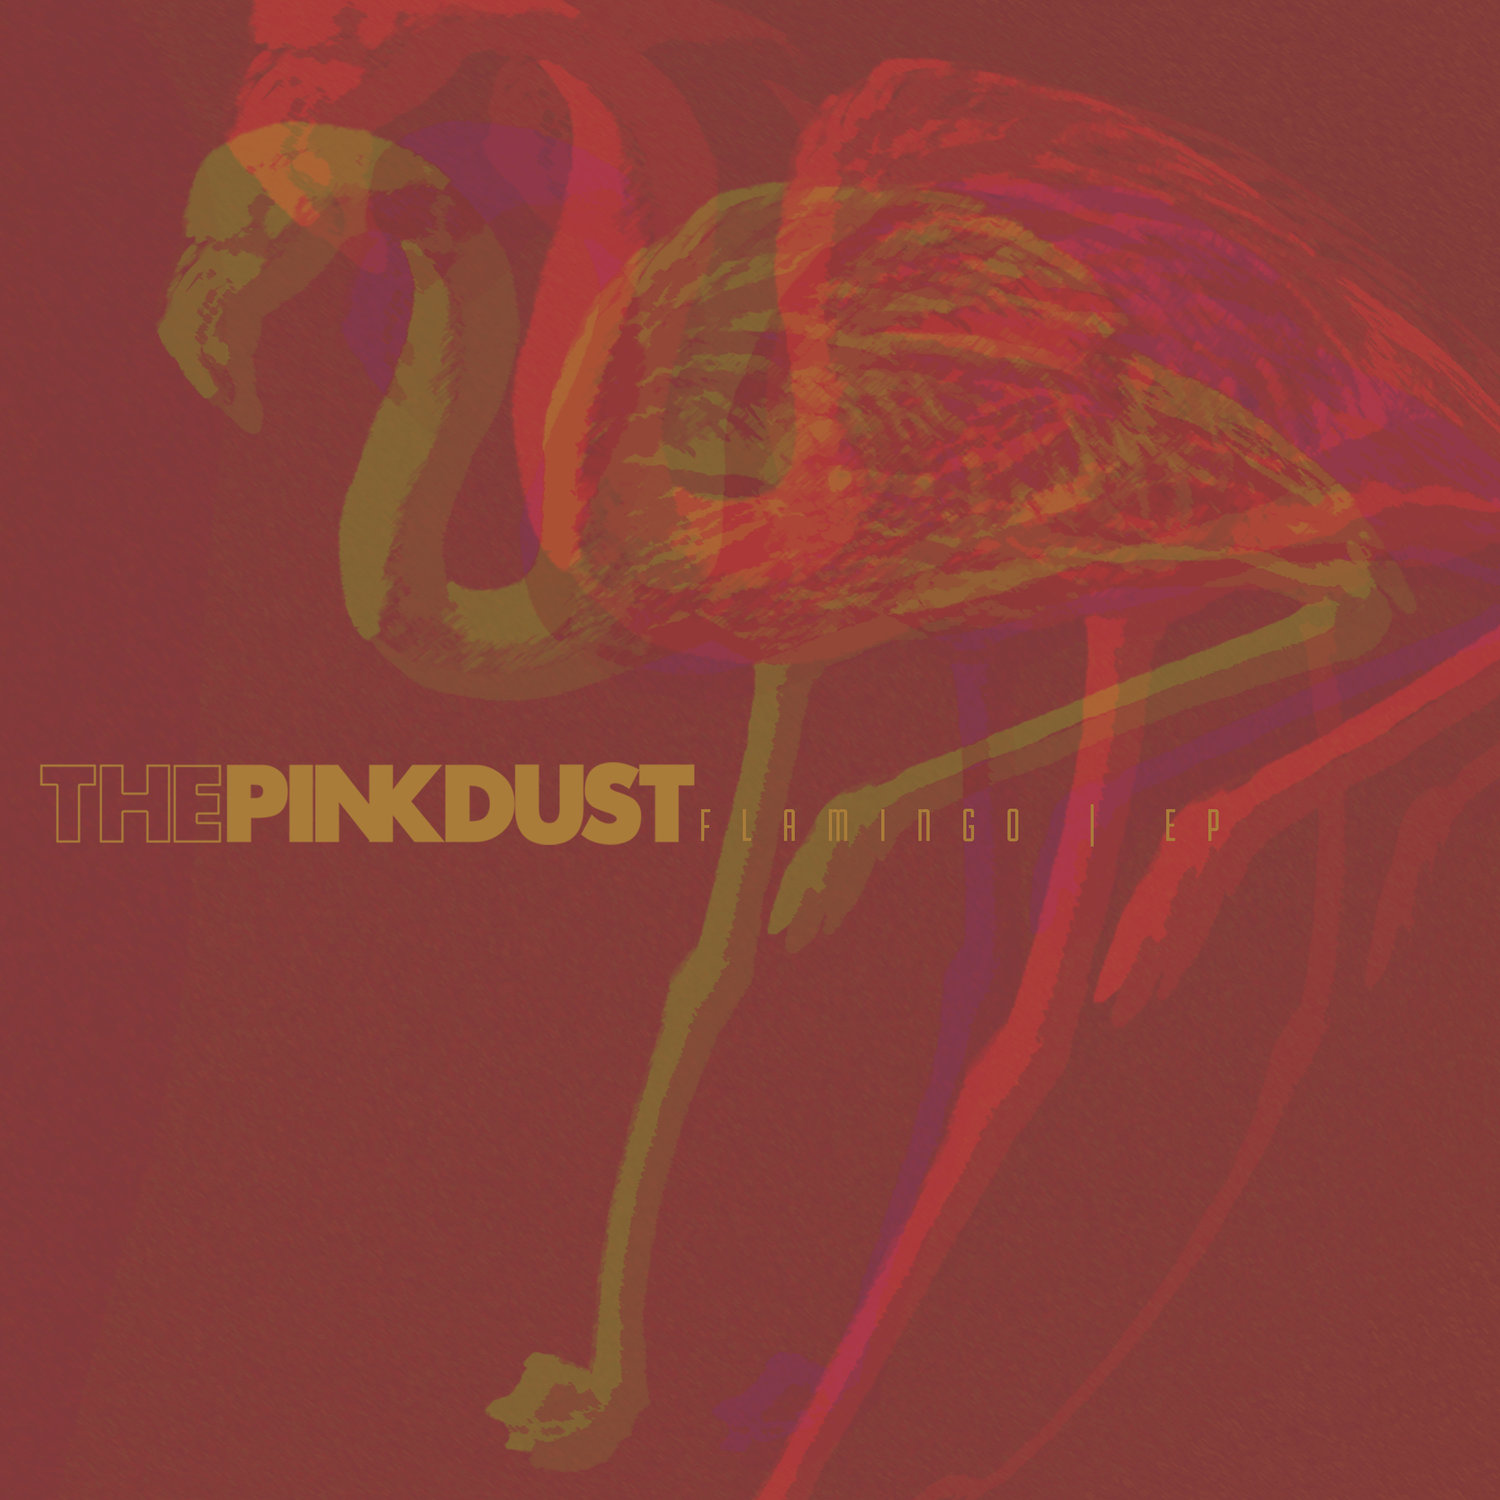 The Pink Dust